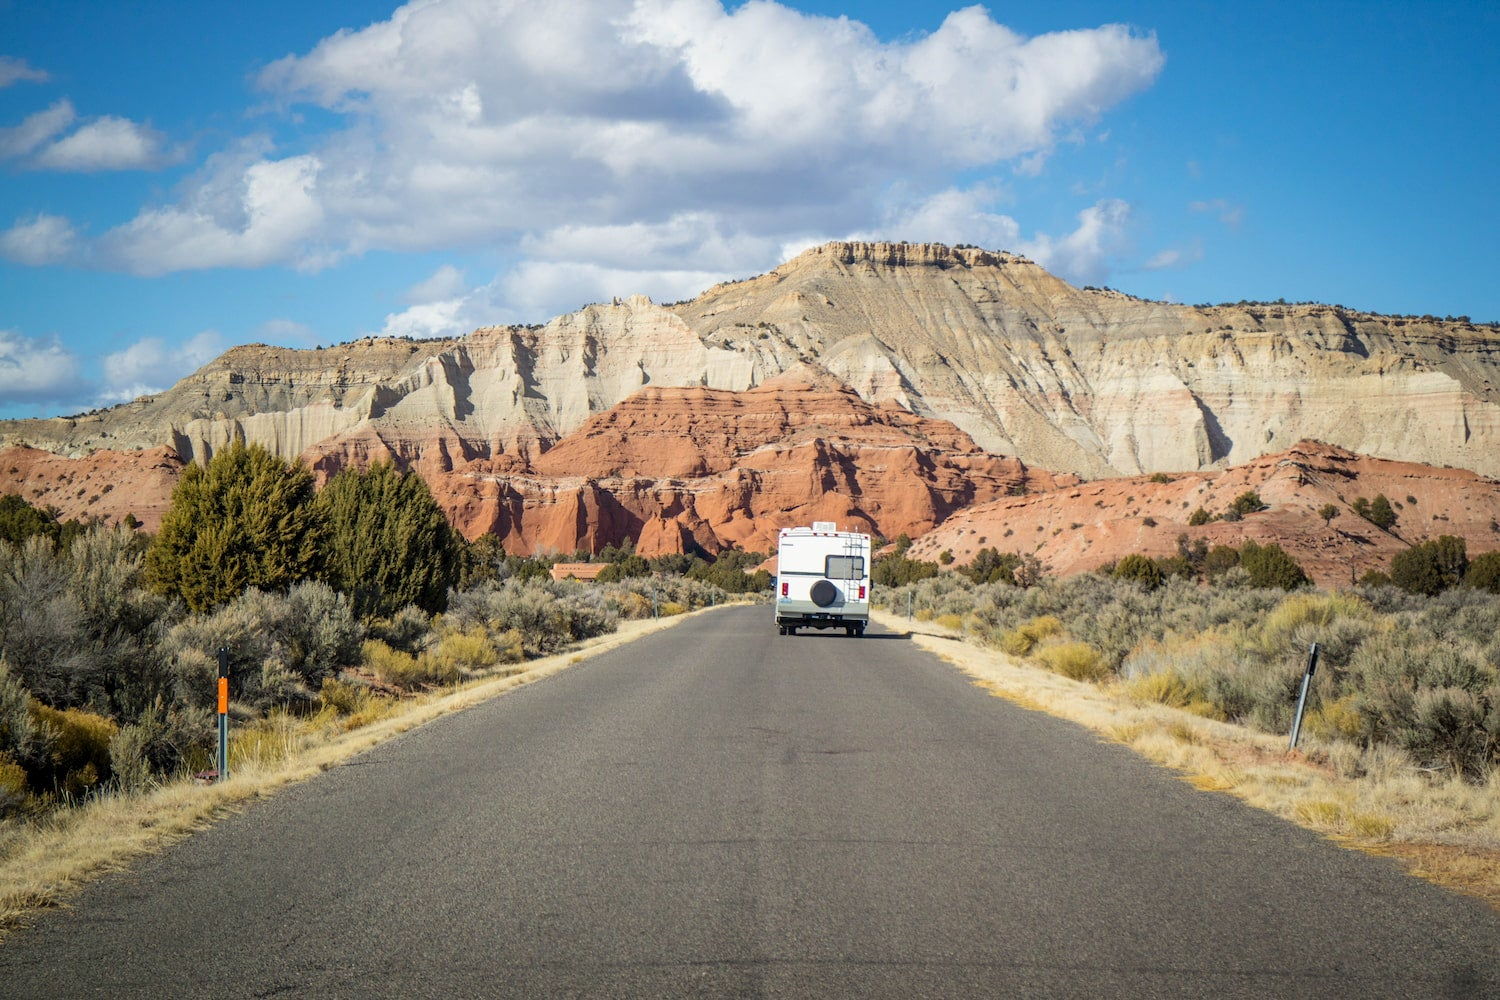 Rv on road at kodachrome state park